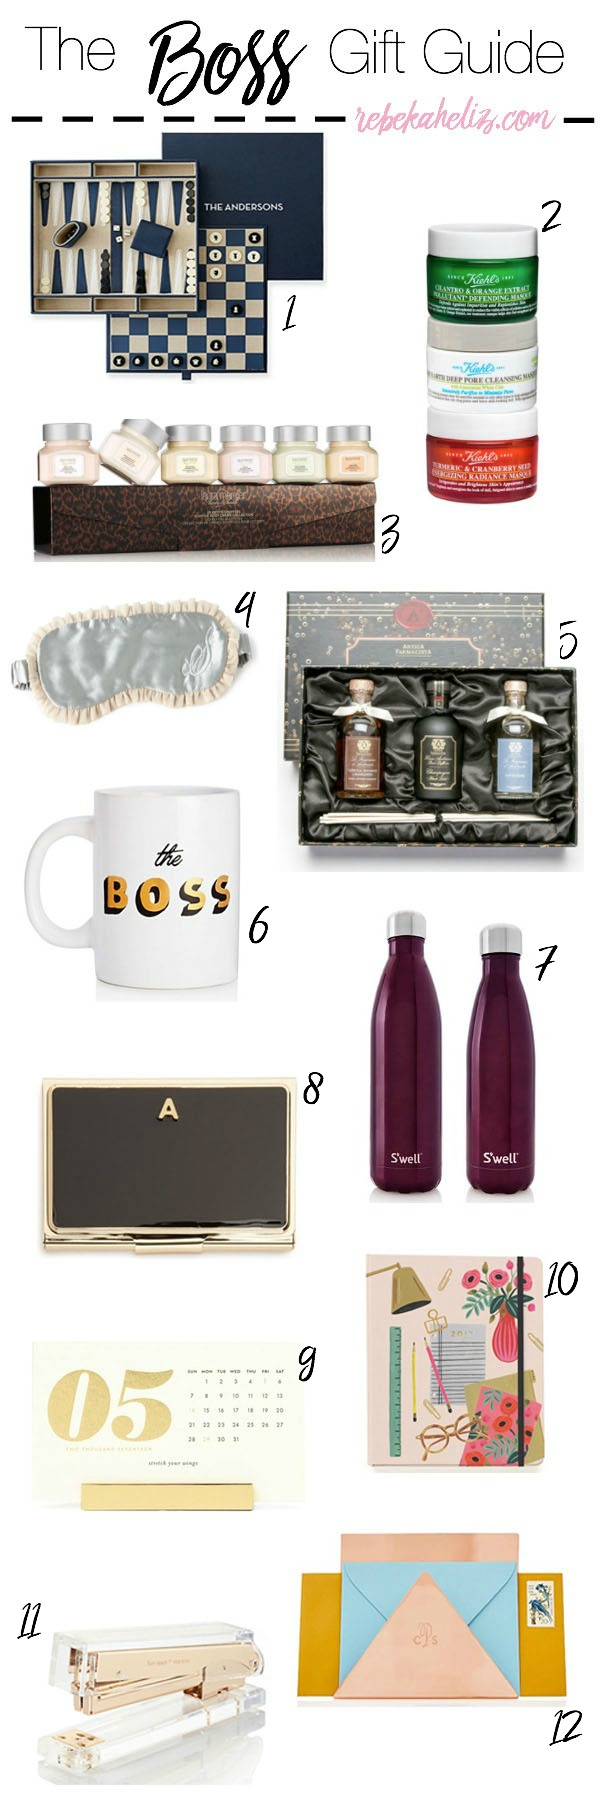 gift guide, boss, girlboss, holidays, desk accessories